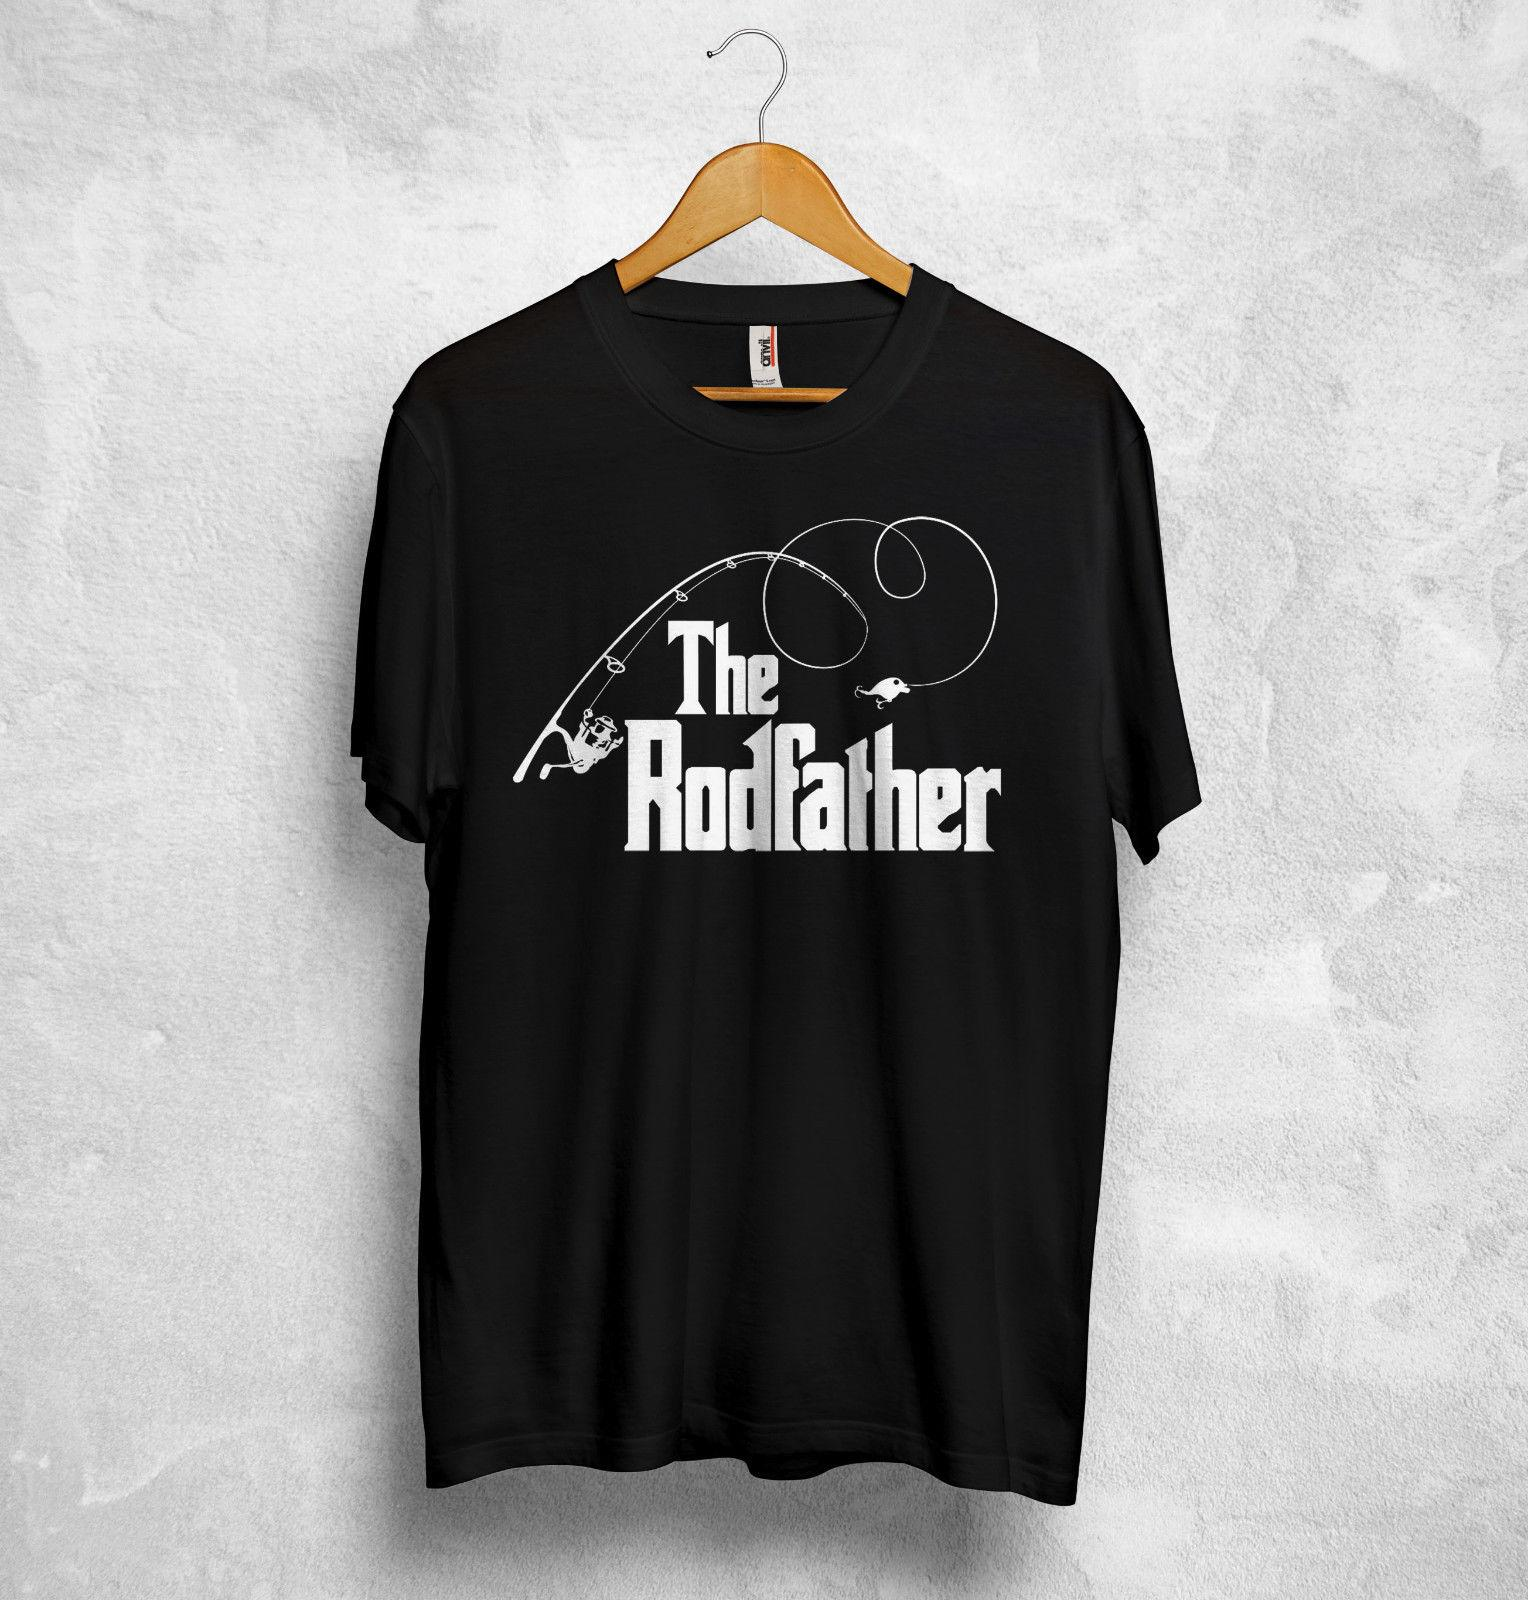 a9b5575b6 Fishing T Shirt The Rodfather Rod Fish The Godfather Gift Grandad Daddy  Father Quirky T Shirt Designs Purchase T Shirt From Nolifeshirt, $11.01|  DHgate.Com